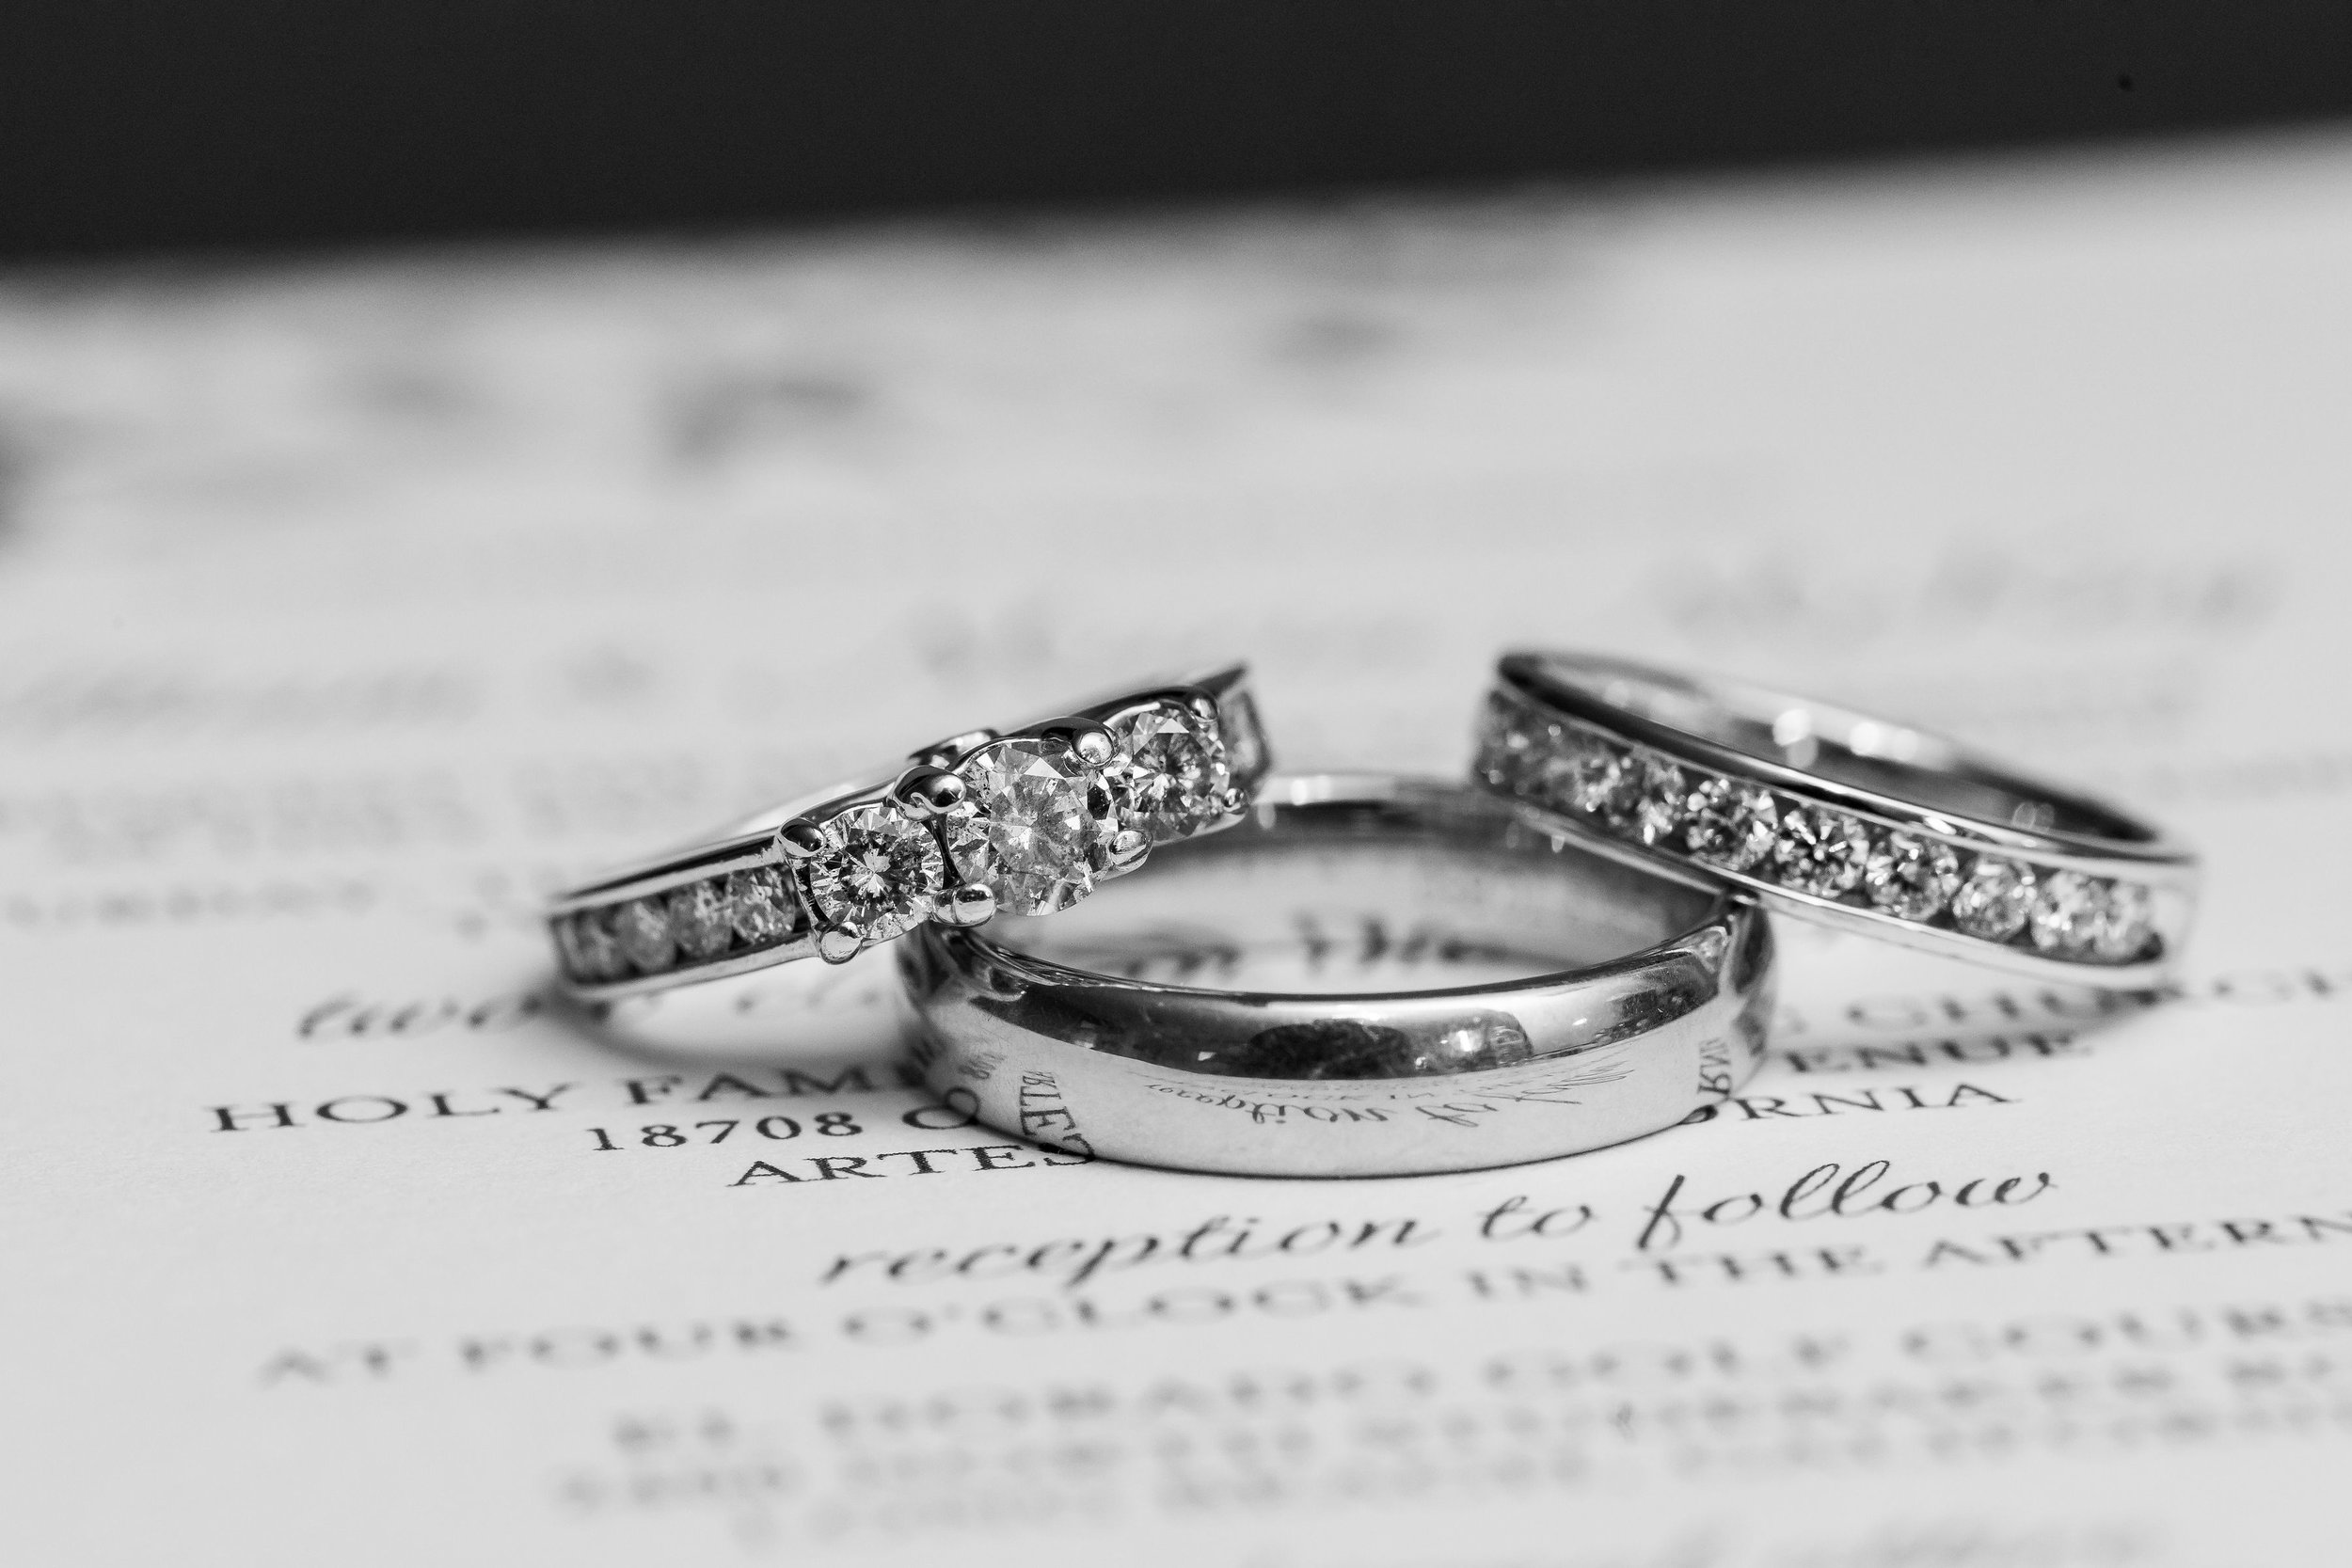 ! Wedding Rings on Invitation.jpg